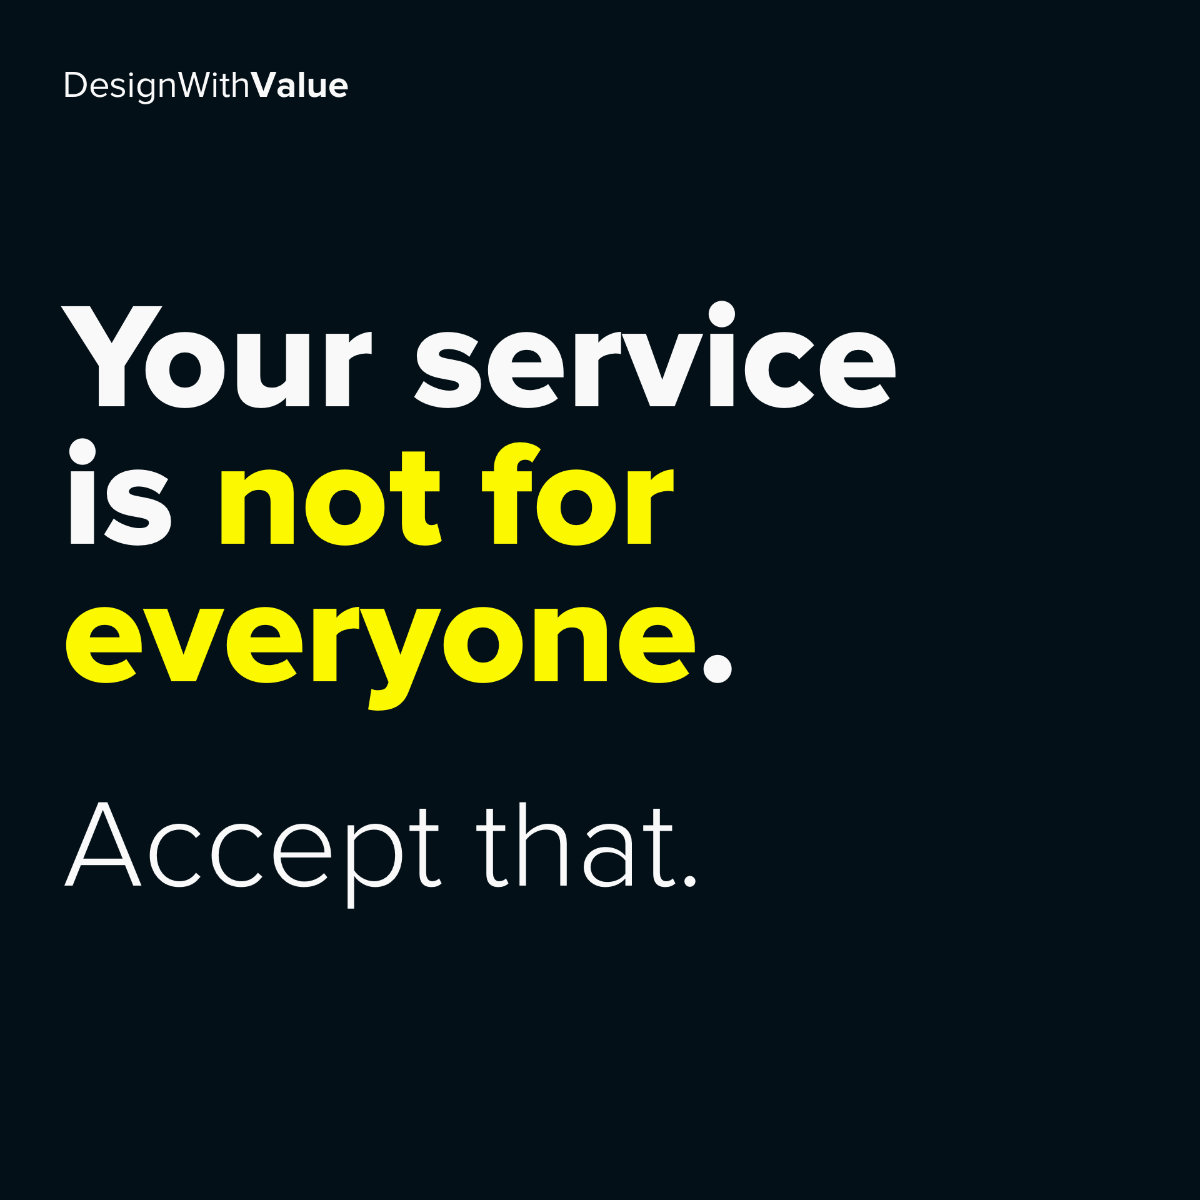 Your service is not for everyone. Accept that.